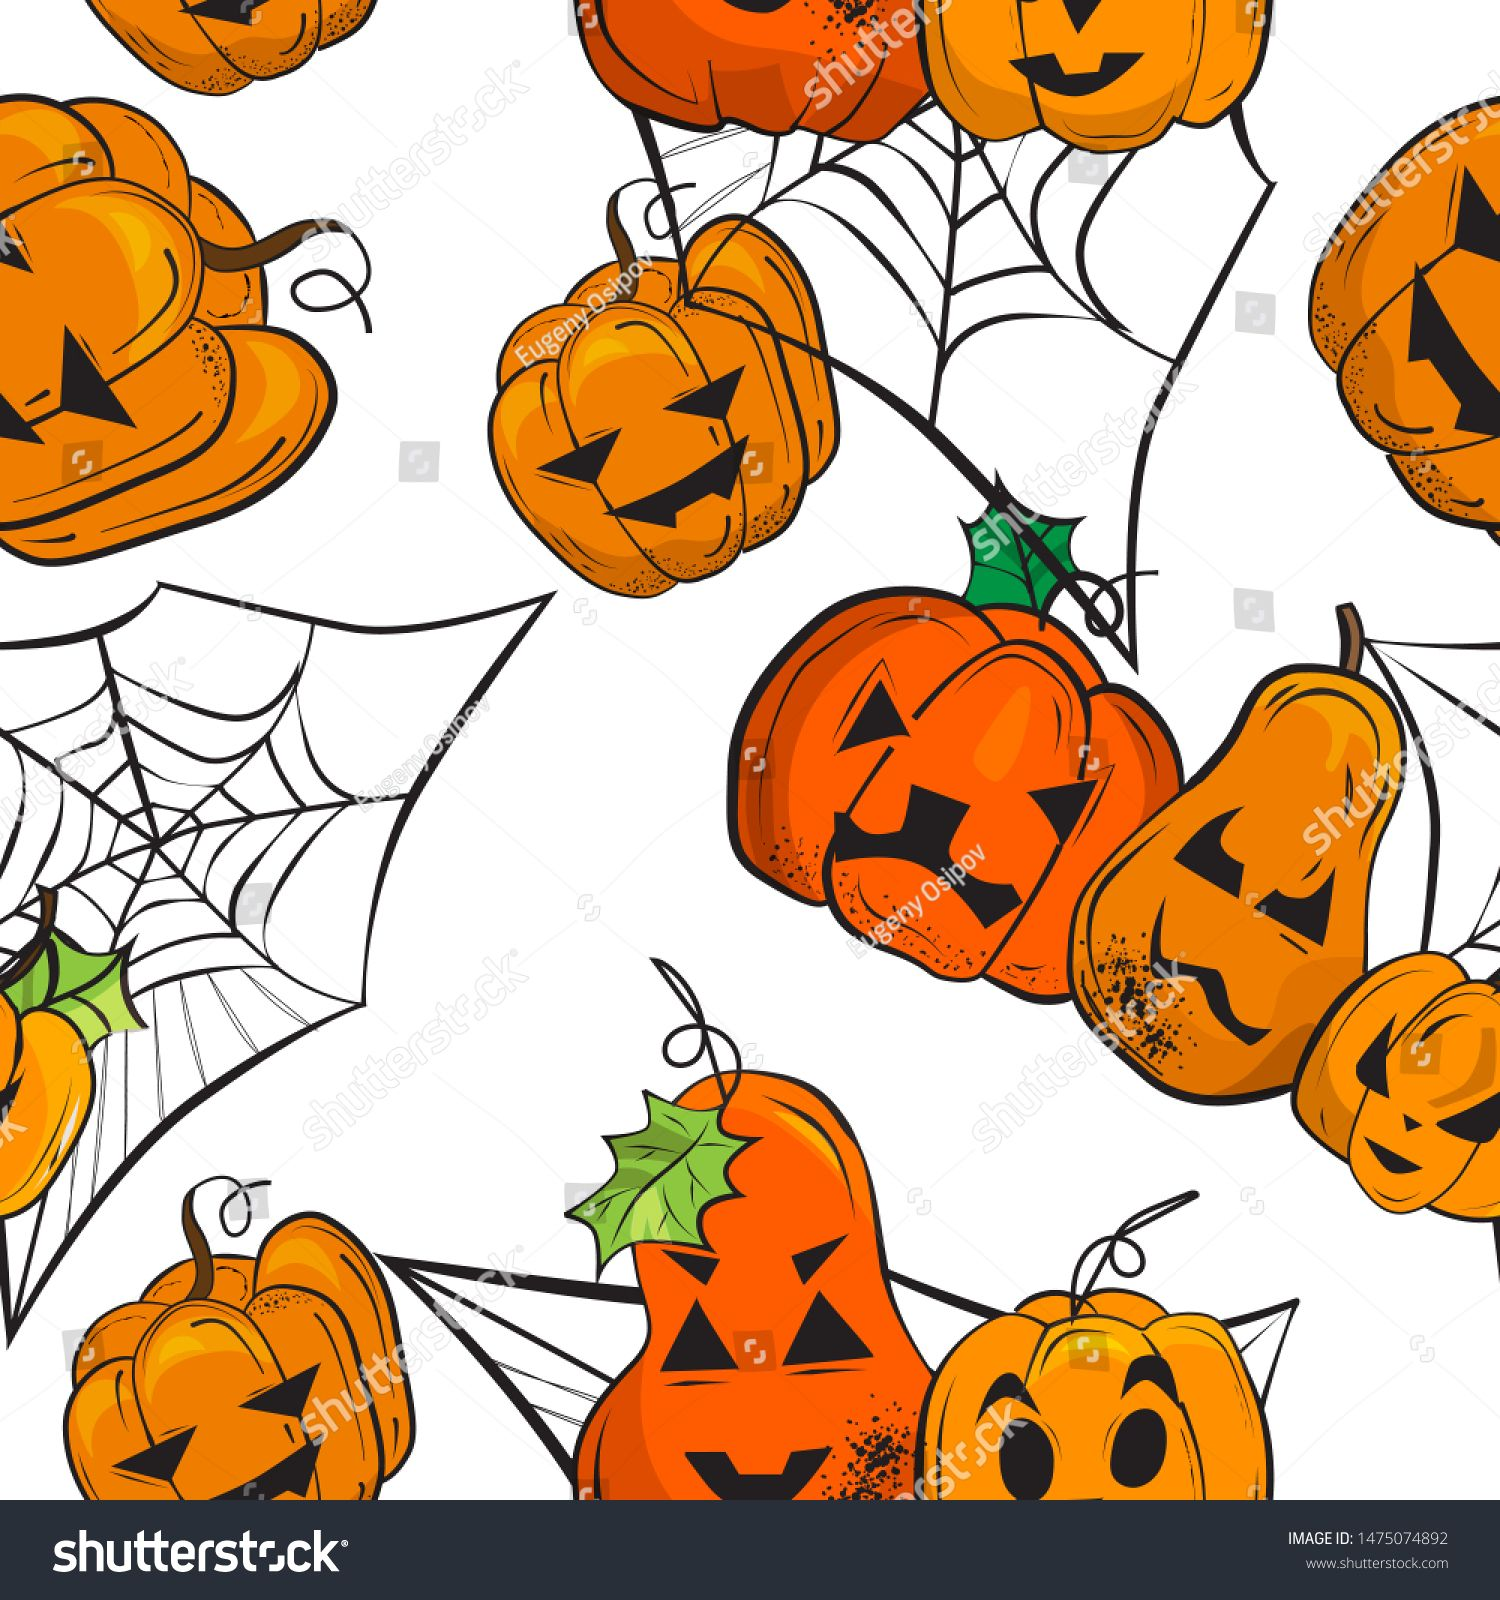 Halloween pattern.Big and small pumpkins with scary faces